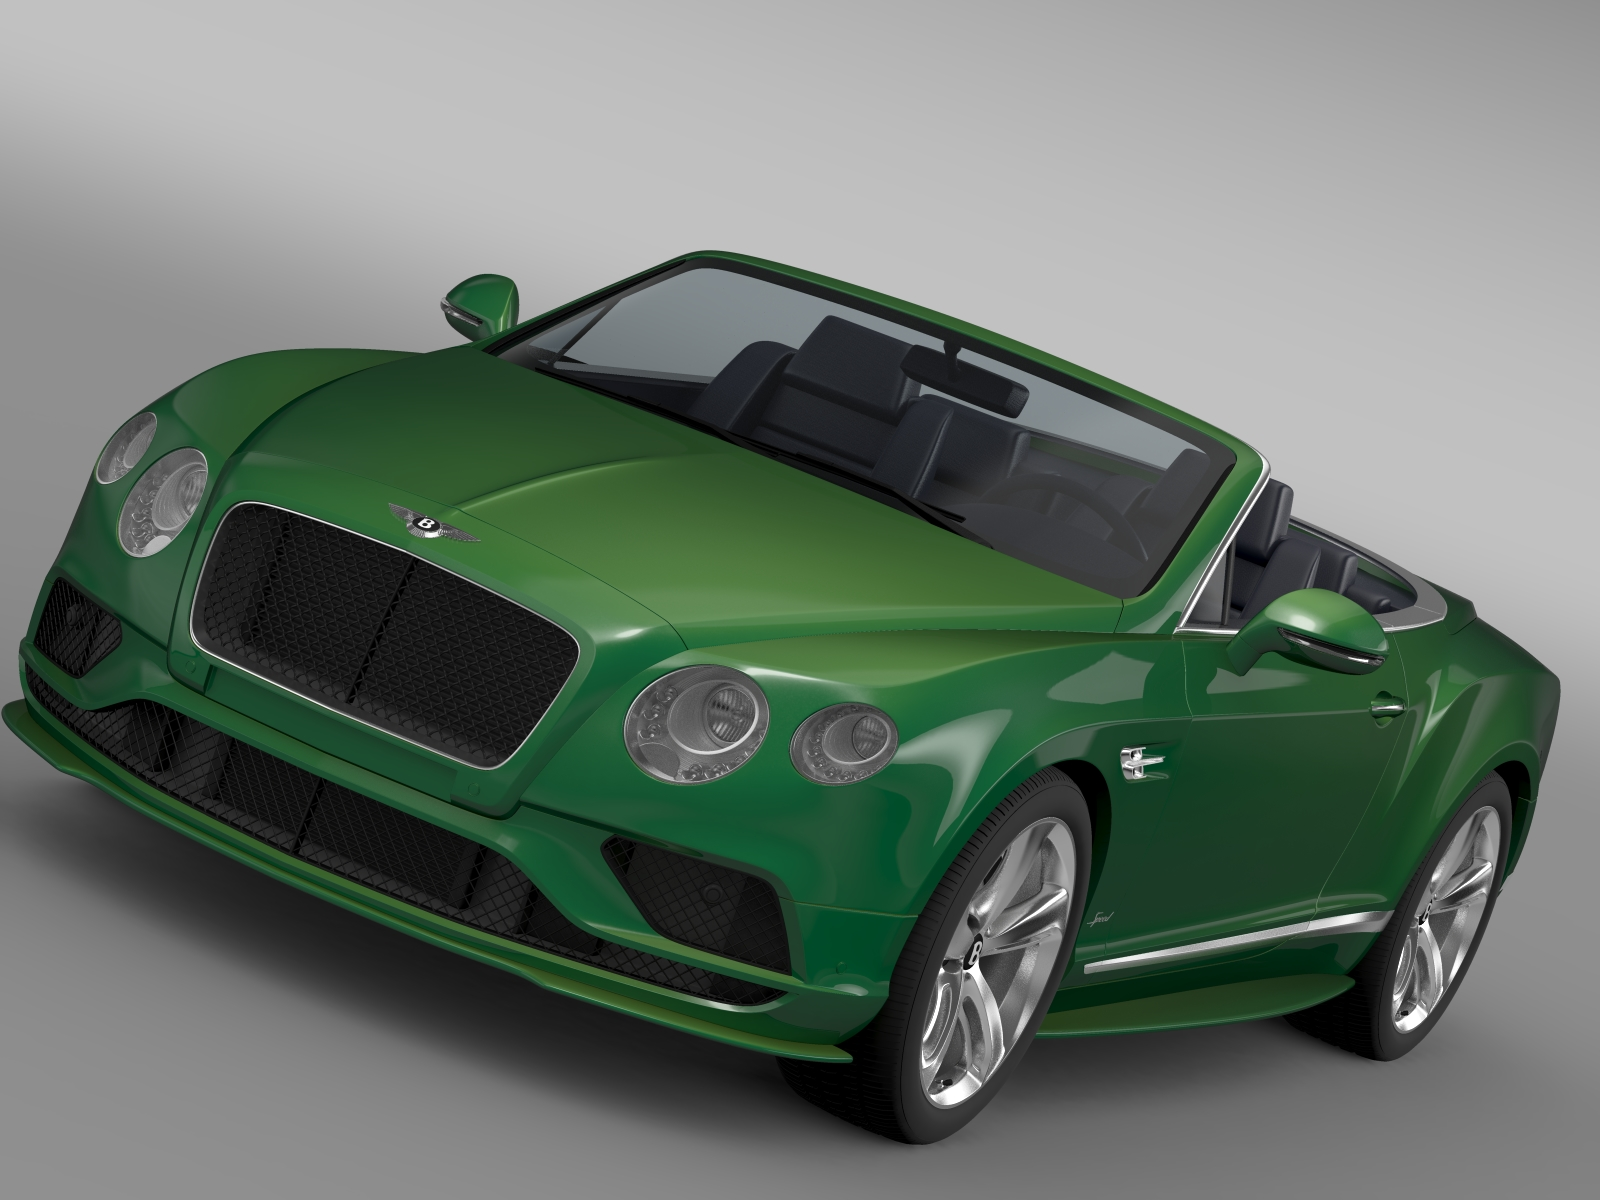 bentley continental gt speed convertible 2015 3d model 3ds max fbx c4d lwo ma mb hrc xsi obj 210971